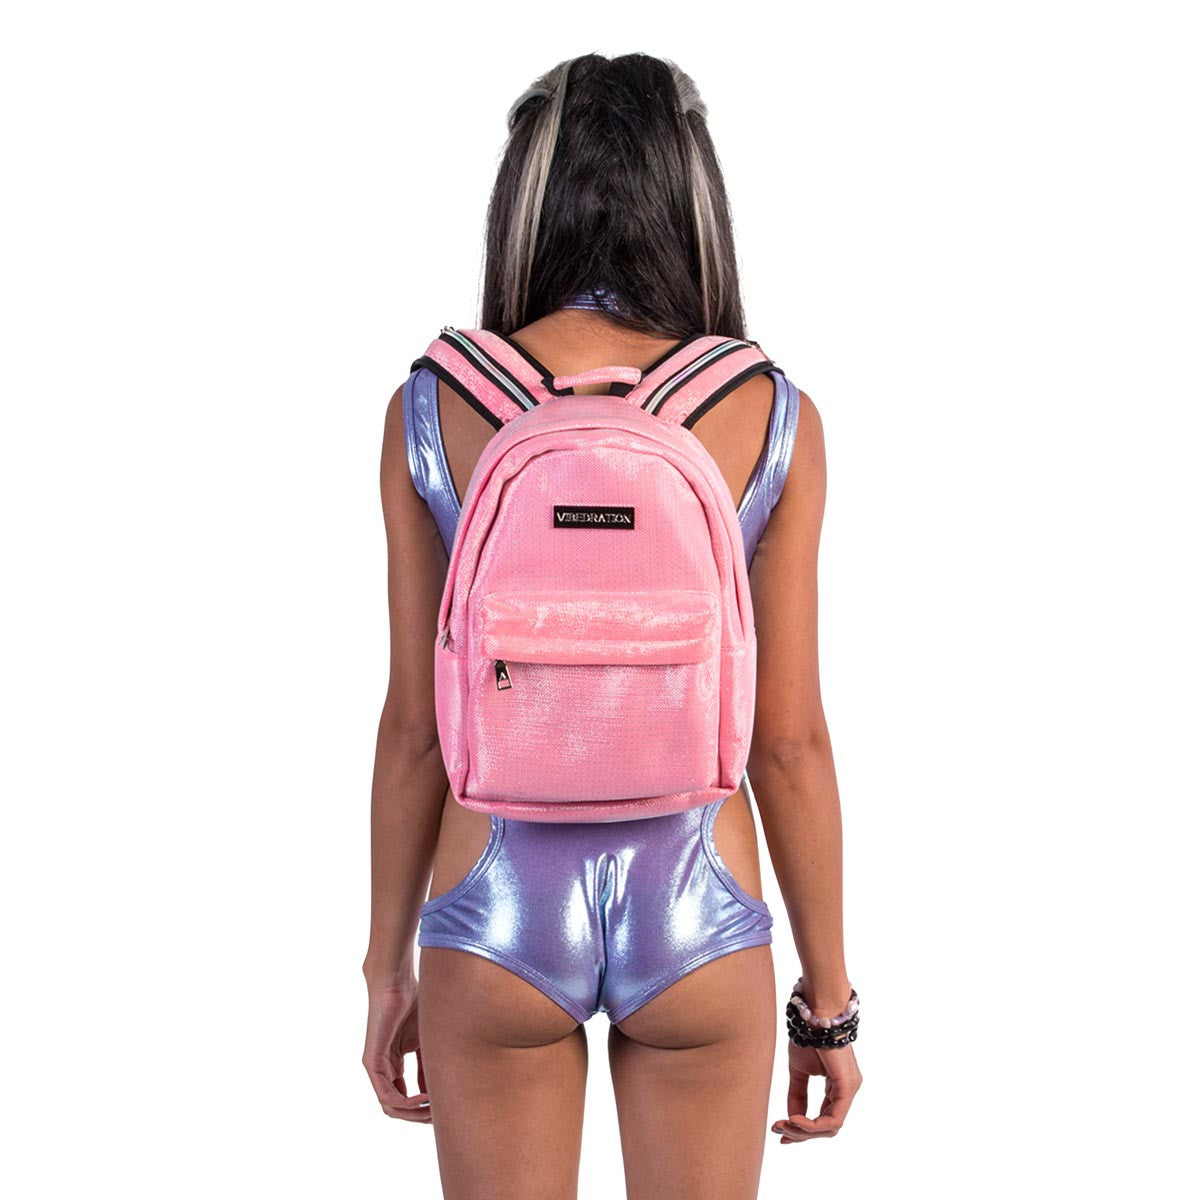 Back view of female wearing Kotton Kandi pink glitter water backpack.